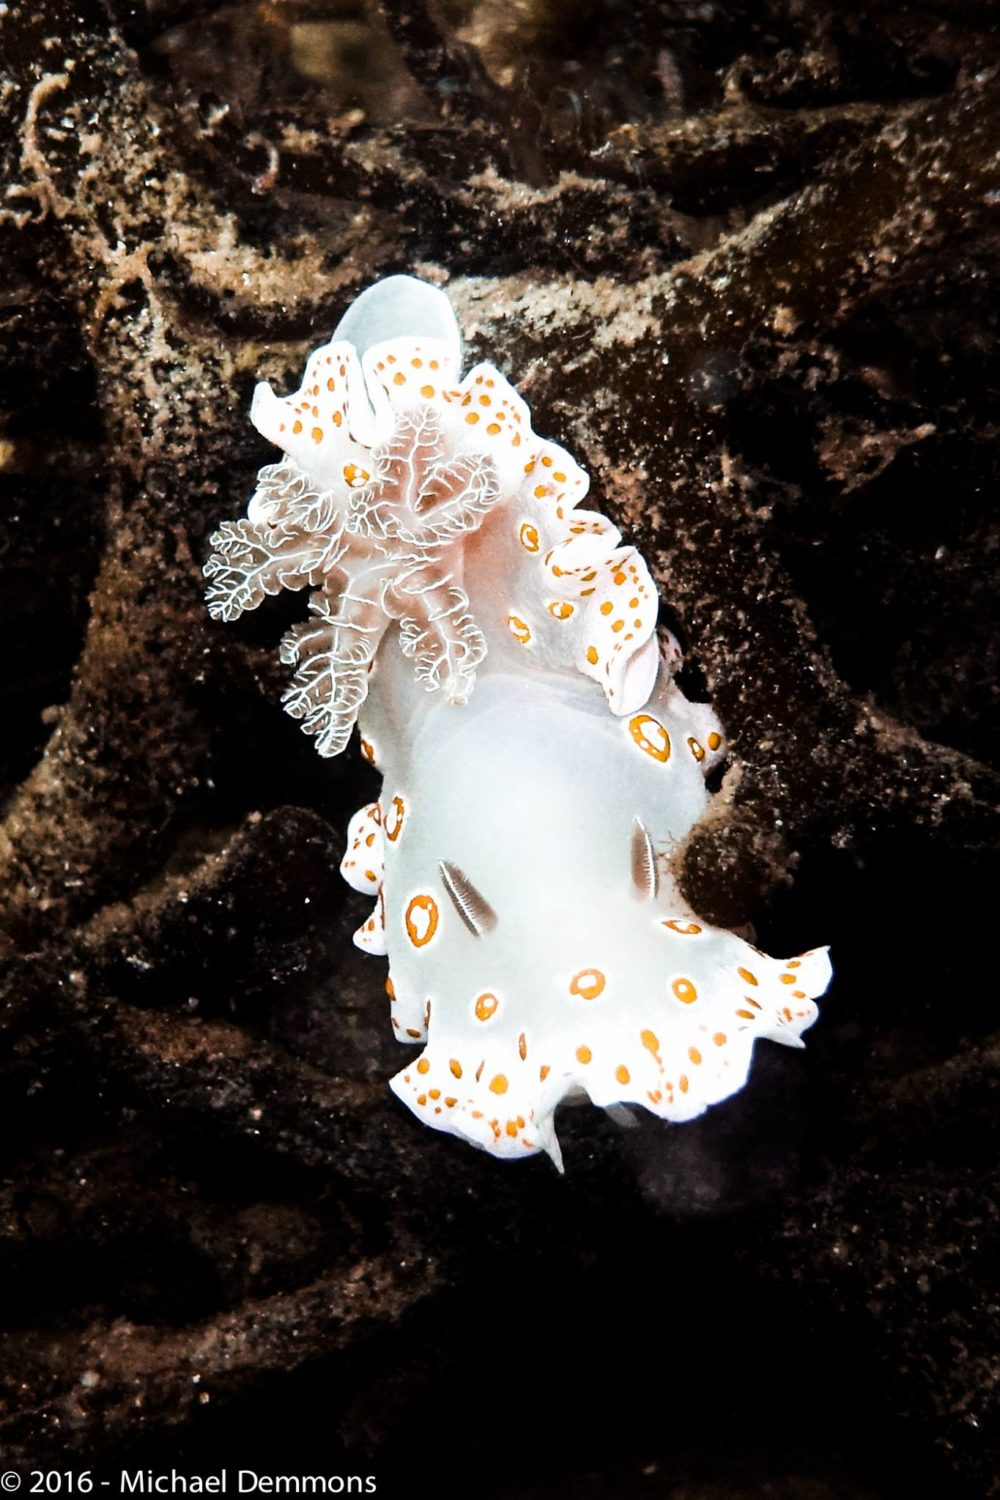 a beautiful white nudibranch with orange spots